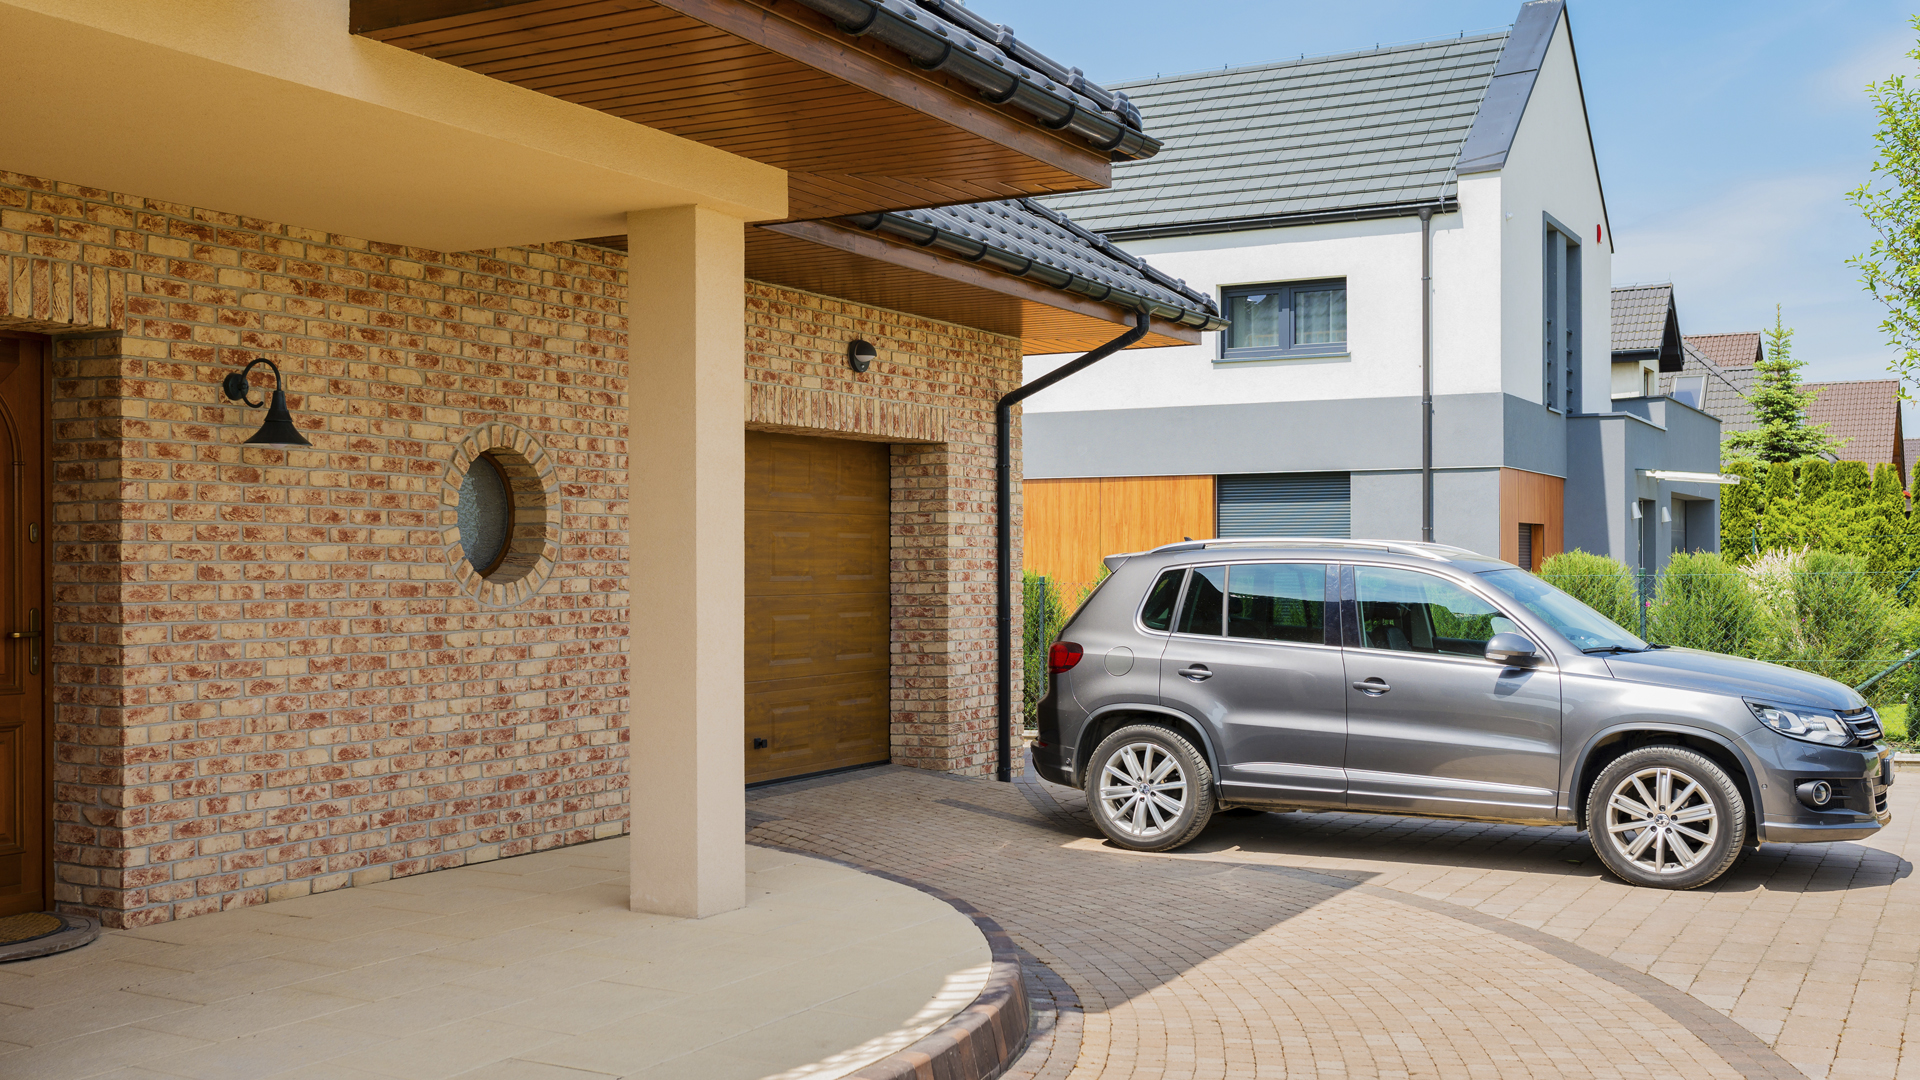 Is this success? What does God want for my life? Image of townhouse and car in an estate